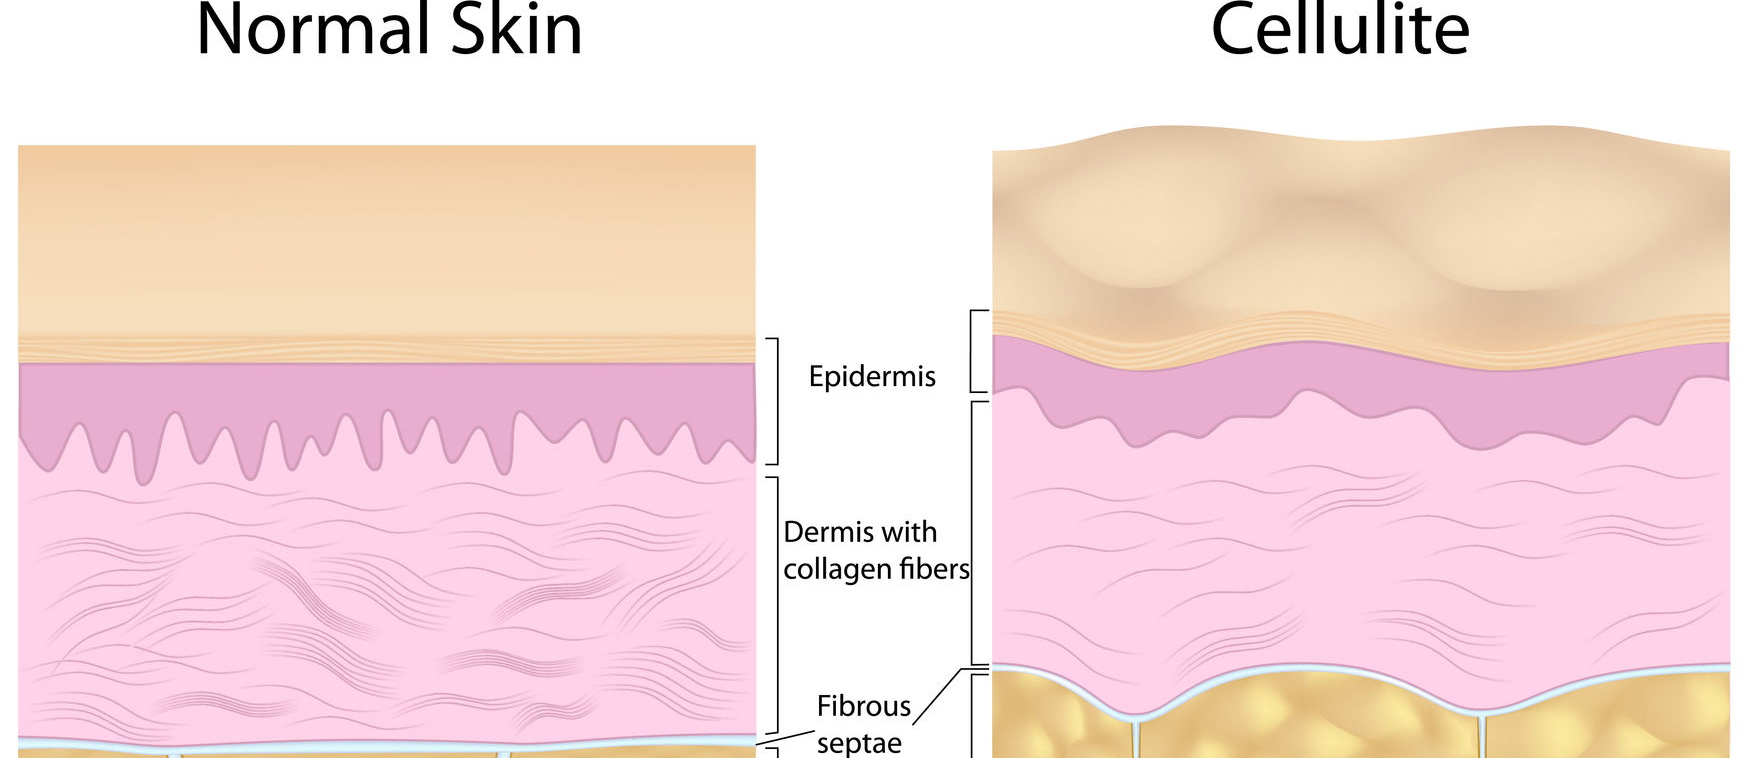 Can Cellulite Be Treated With Diet?